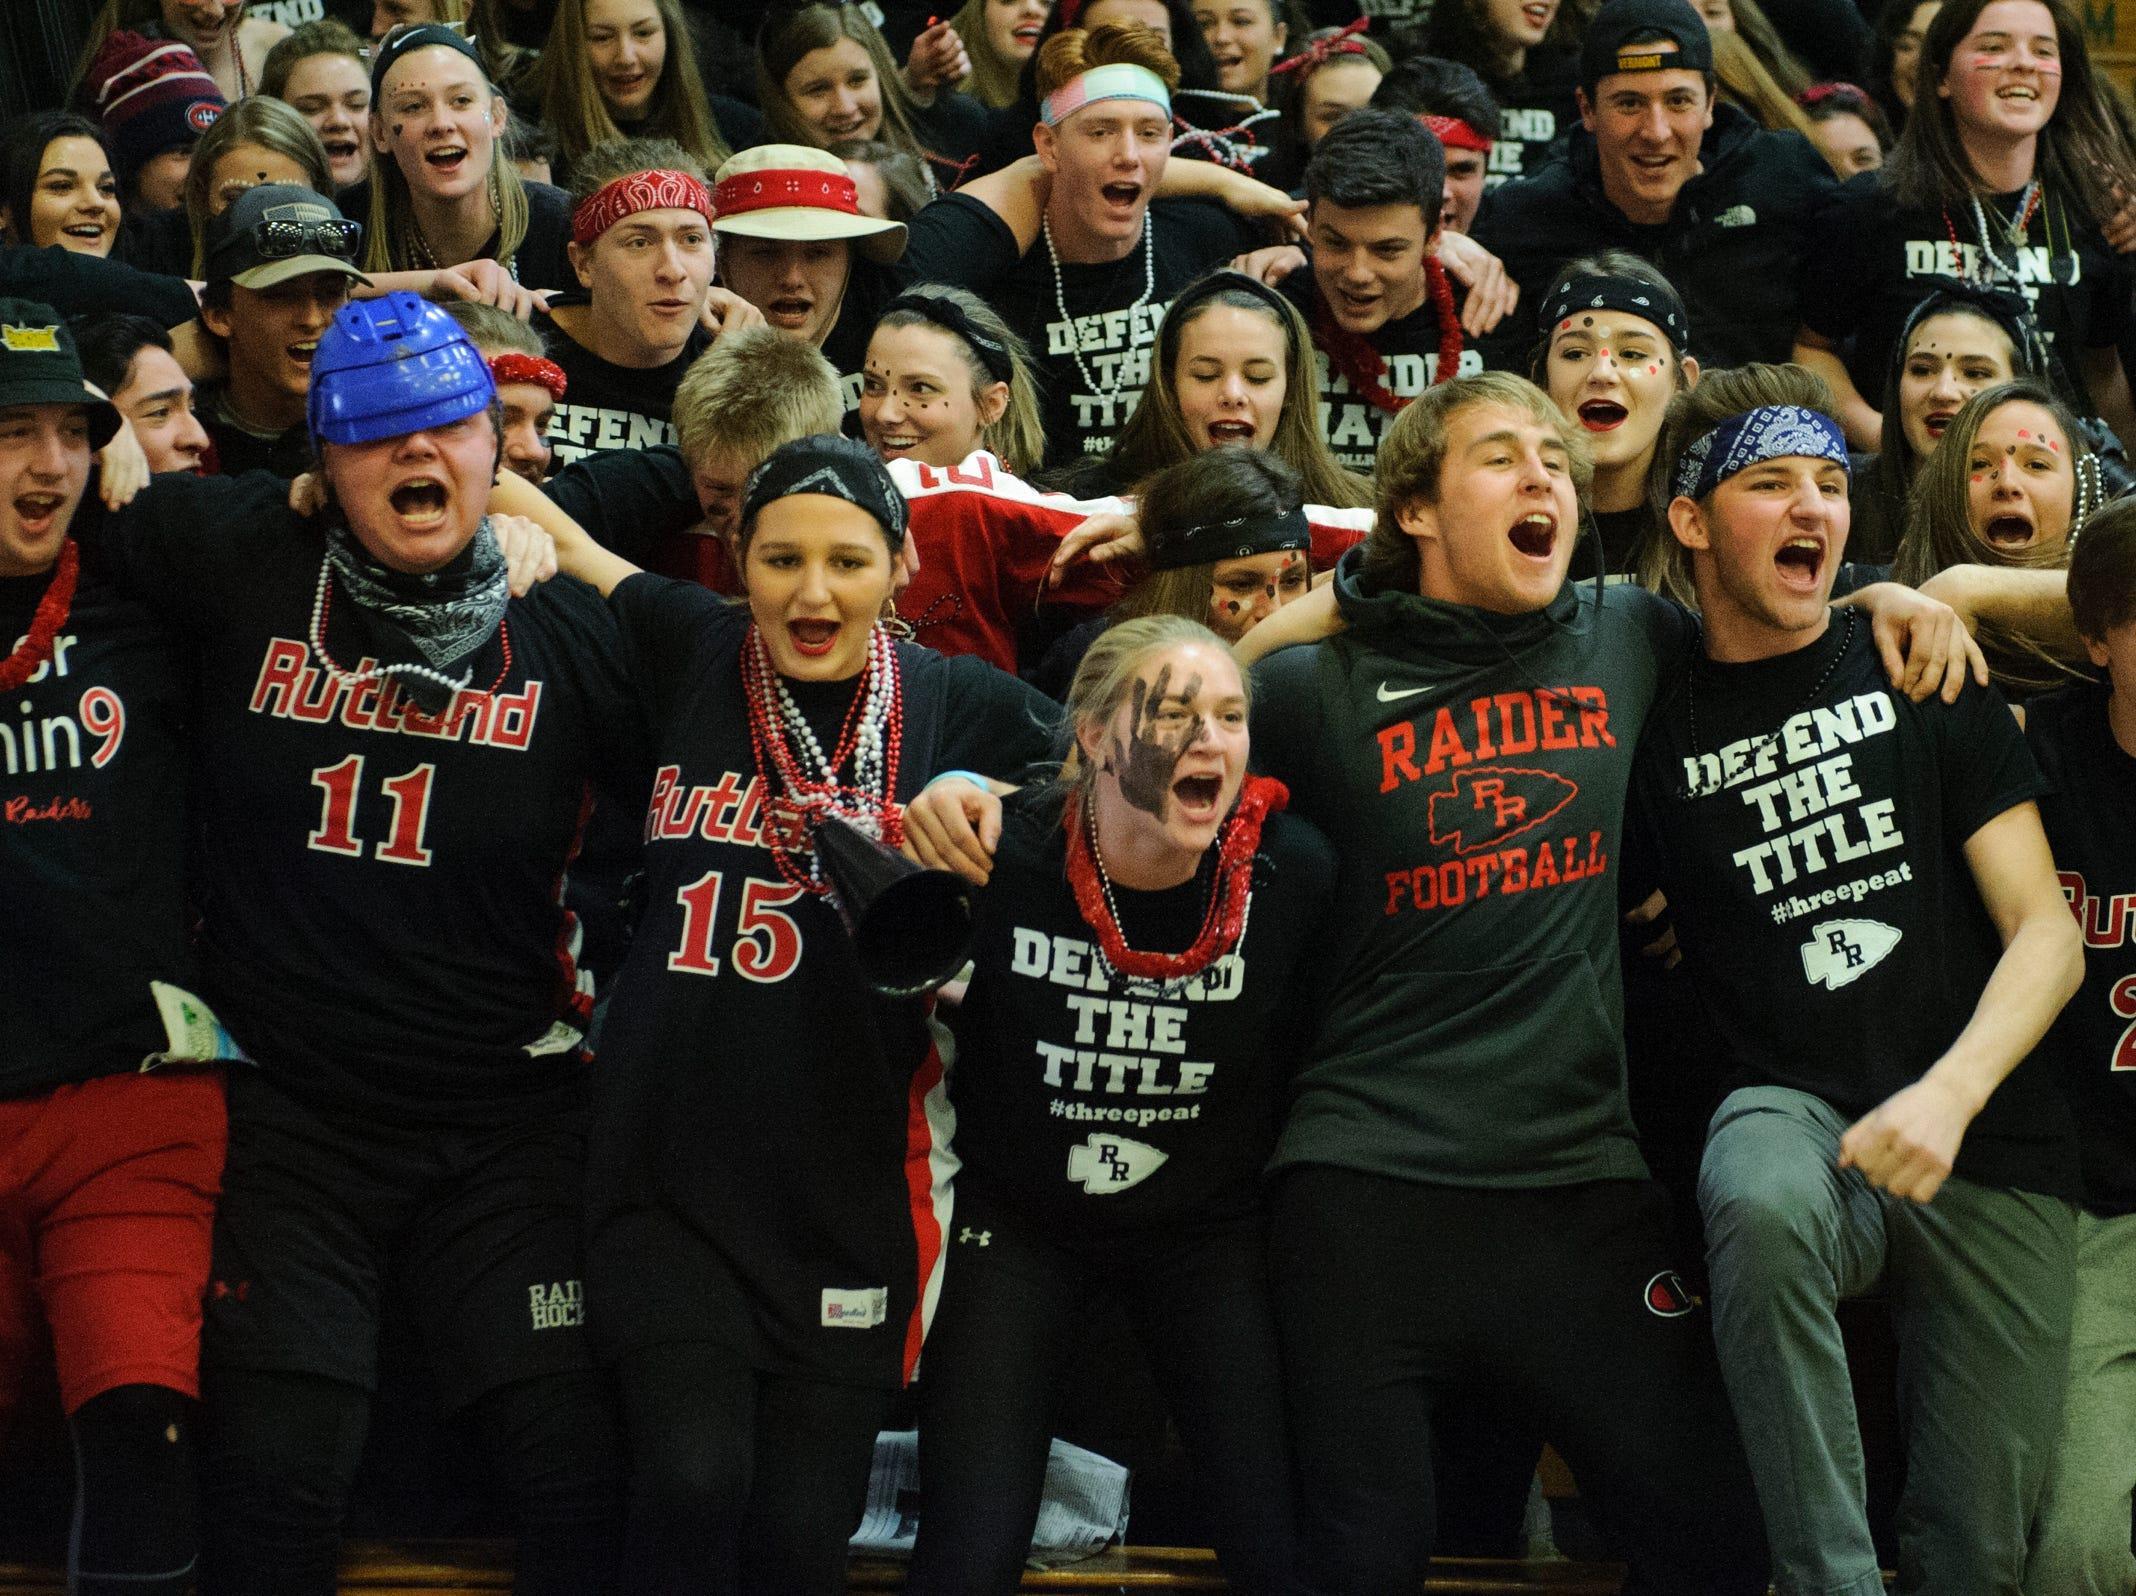 Rutland fans cheer for the team during the DI boys basketball championship game between the St. Johnsbury Hilltoppers and the Rutland Raiders at Patrick Gym on Sunday afternoon March 17, 2019 in Burlington, Vermont.